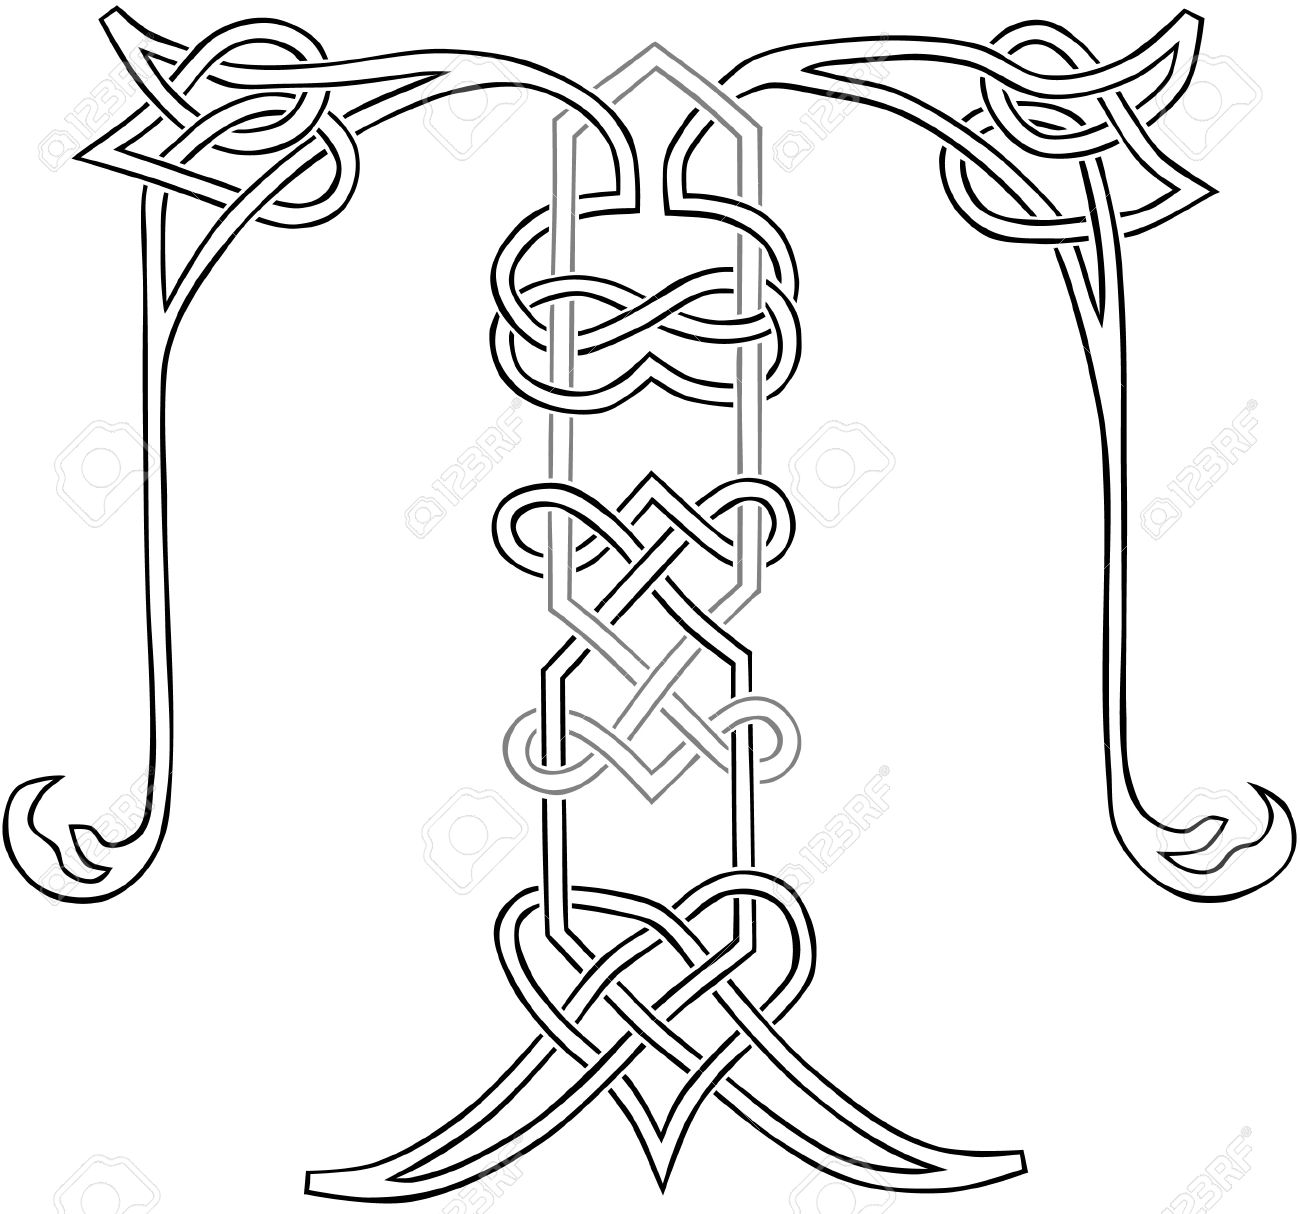 A Celtic Knot Work Capital Letter T Stylized Outline Stock Vector